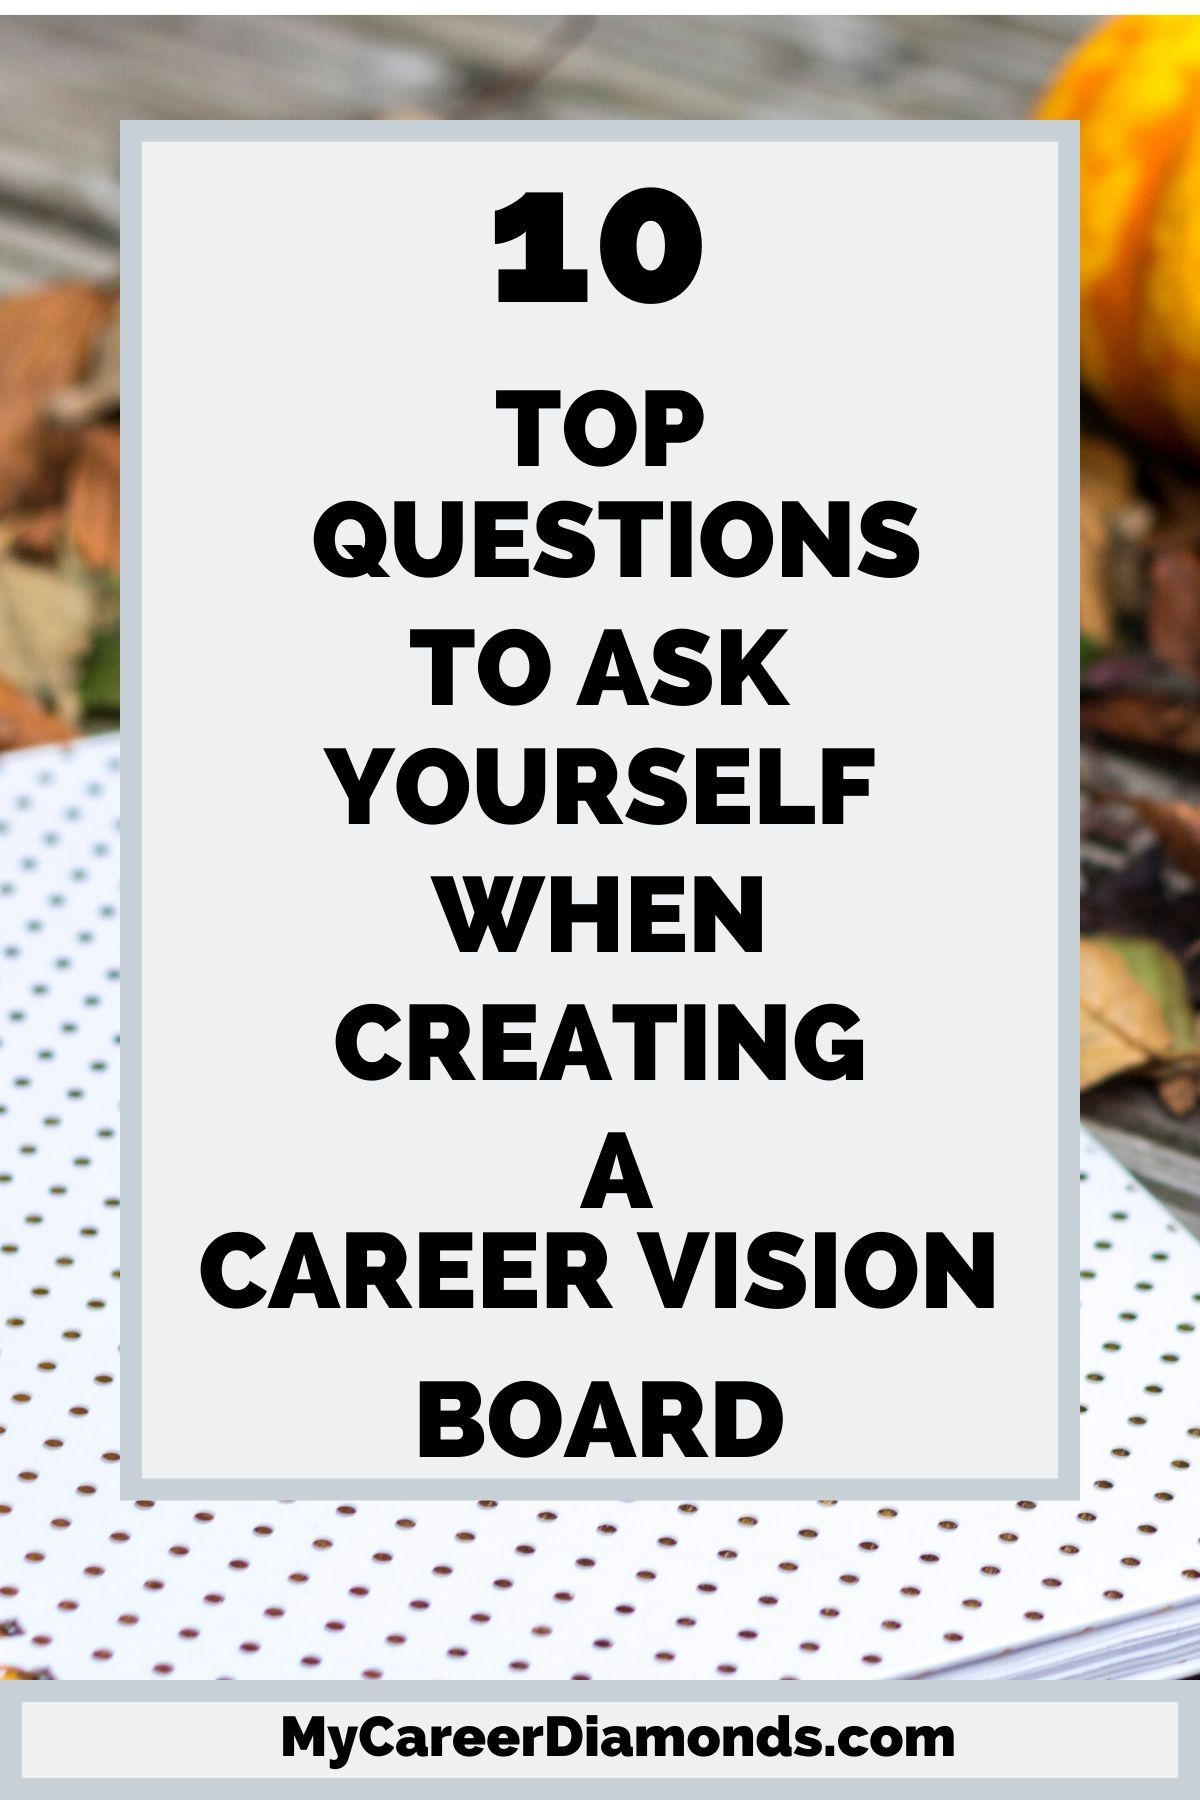 10 Top Questions To Ask Yourself When Creating A Career